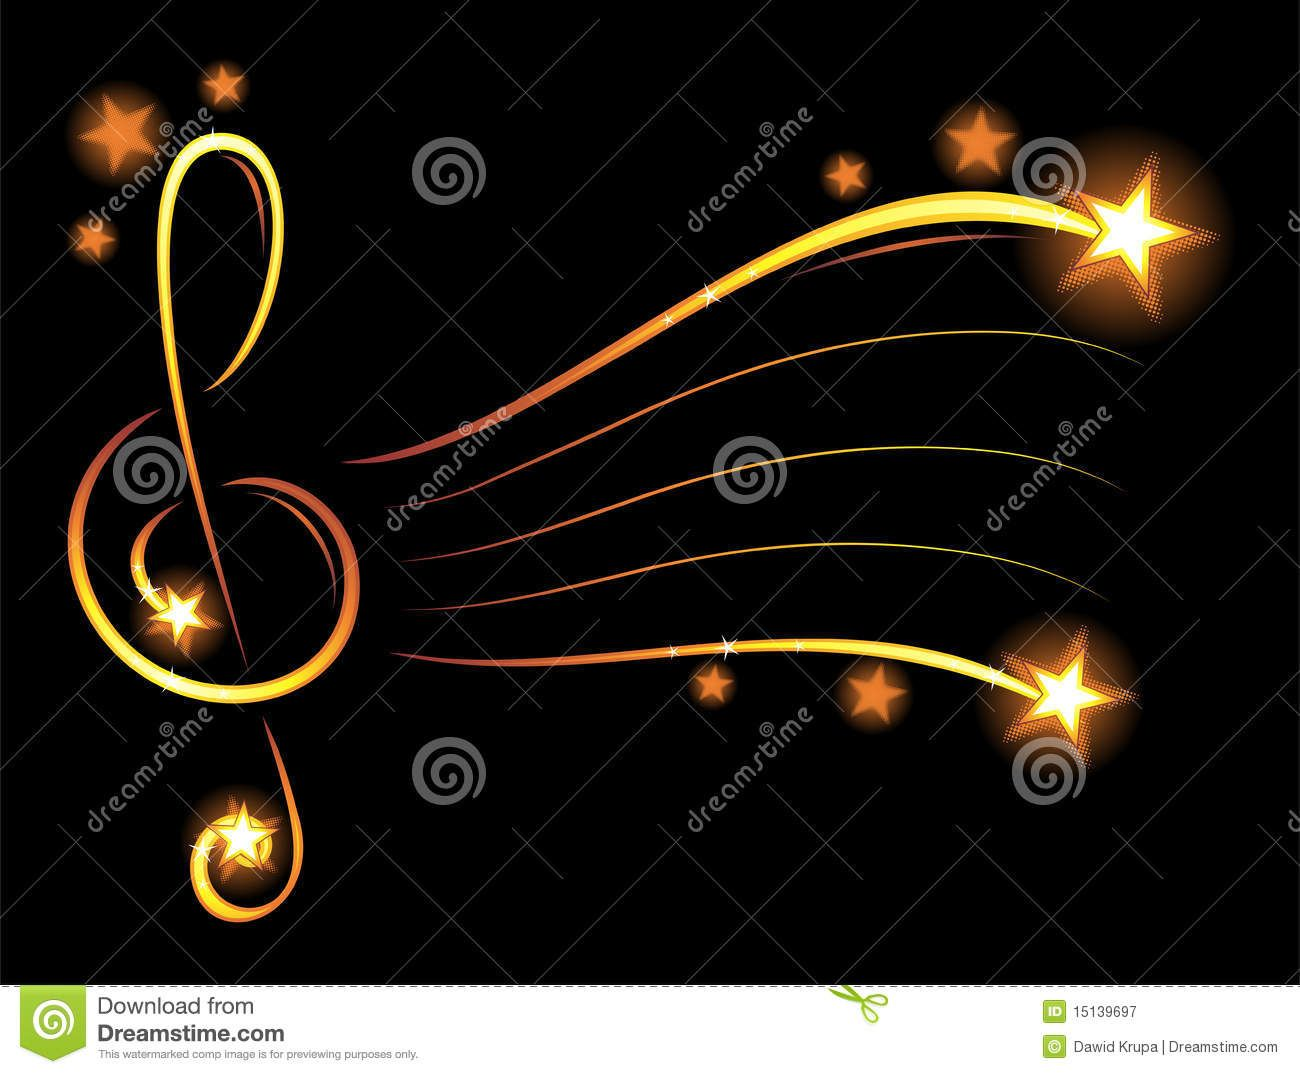 Music Wallpaper Download From Over 65 Million High Quality Stock Photos Images Vectors Sign Up For Free Today Imag Music Wallpaper Music Images Music Art